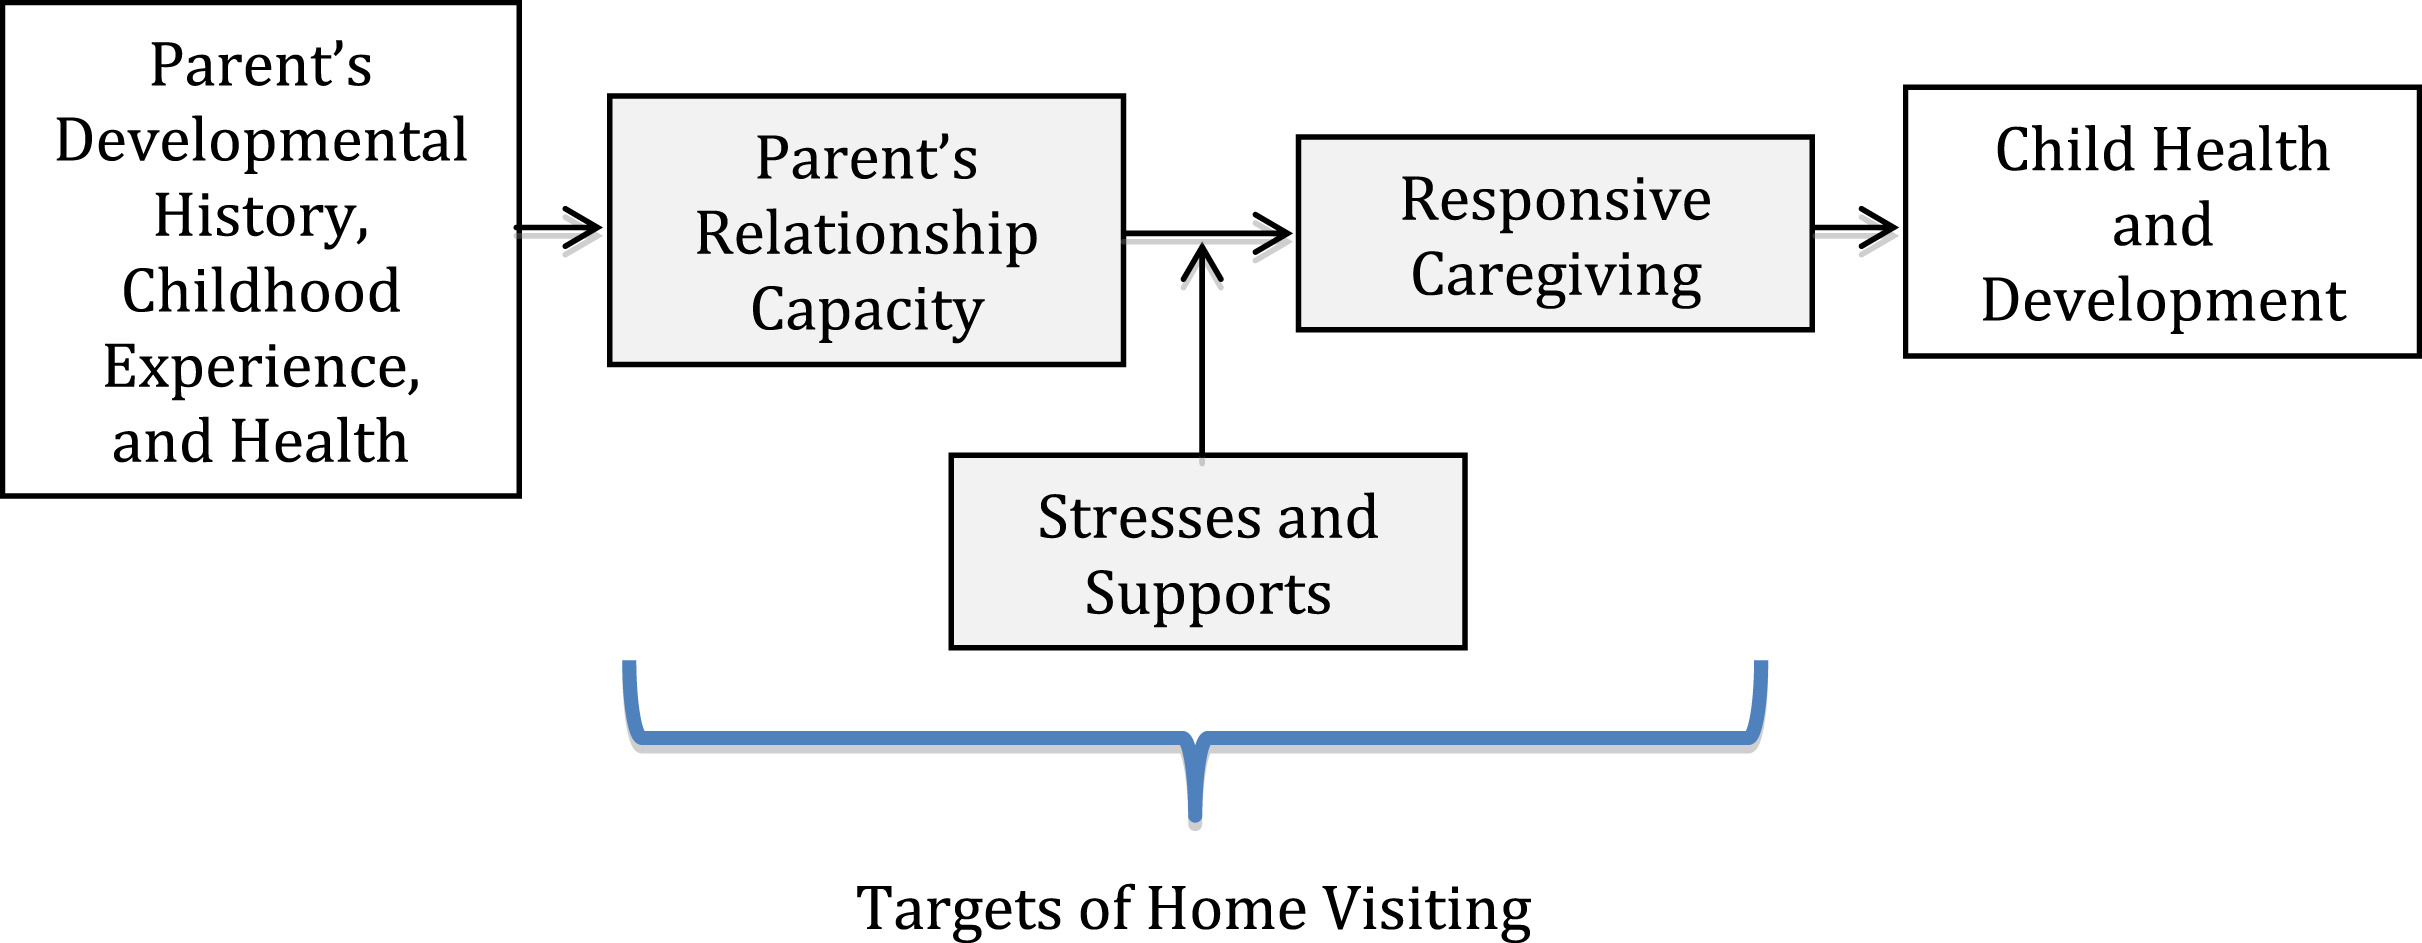 home visiting: a service strategy to reduce poverty and mitigate